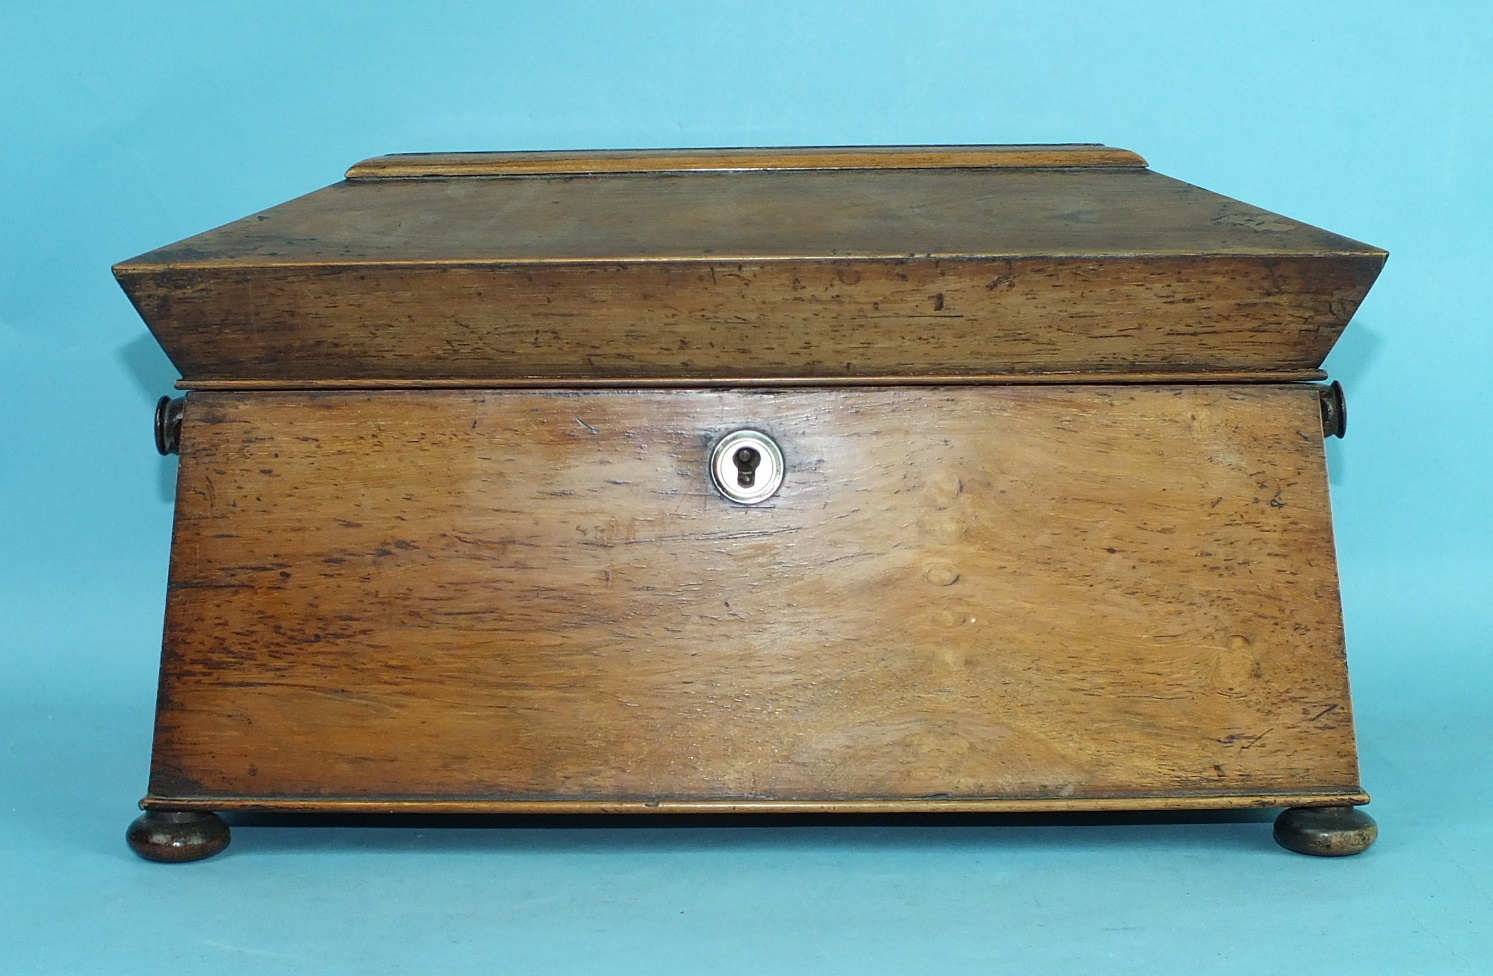 Lot 160 - An early-19th century rosewood sarcophagus-shaped three-division tea caddy on bun feet, with